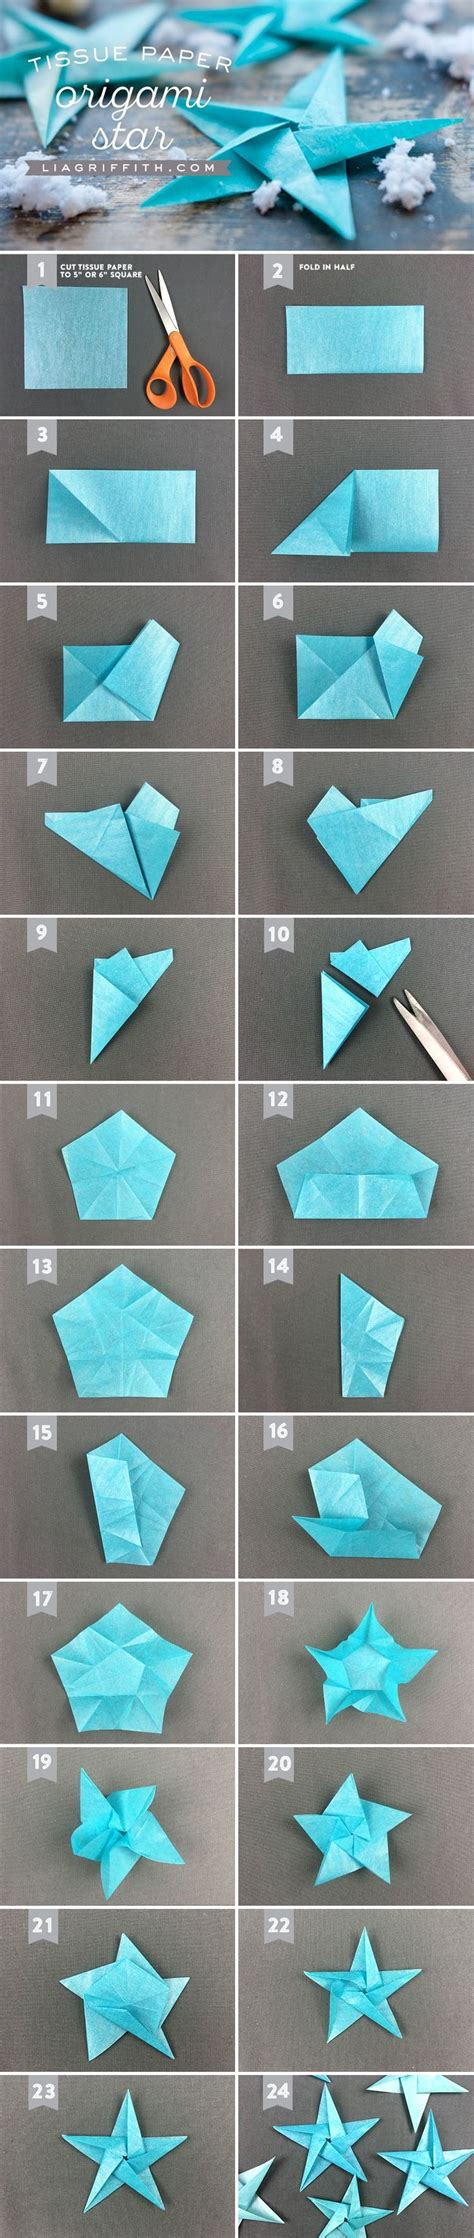 25 best ideas about origami step by step on